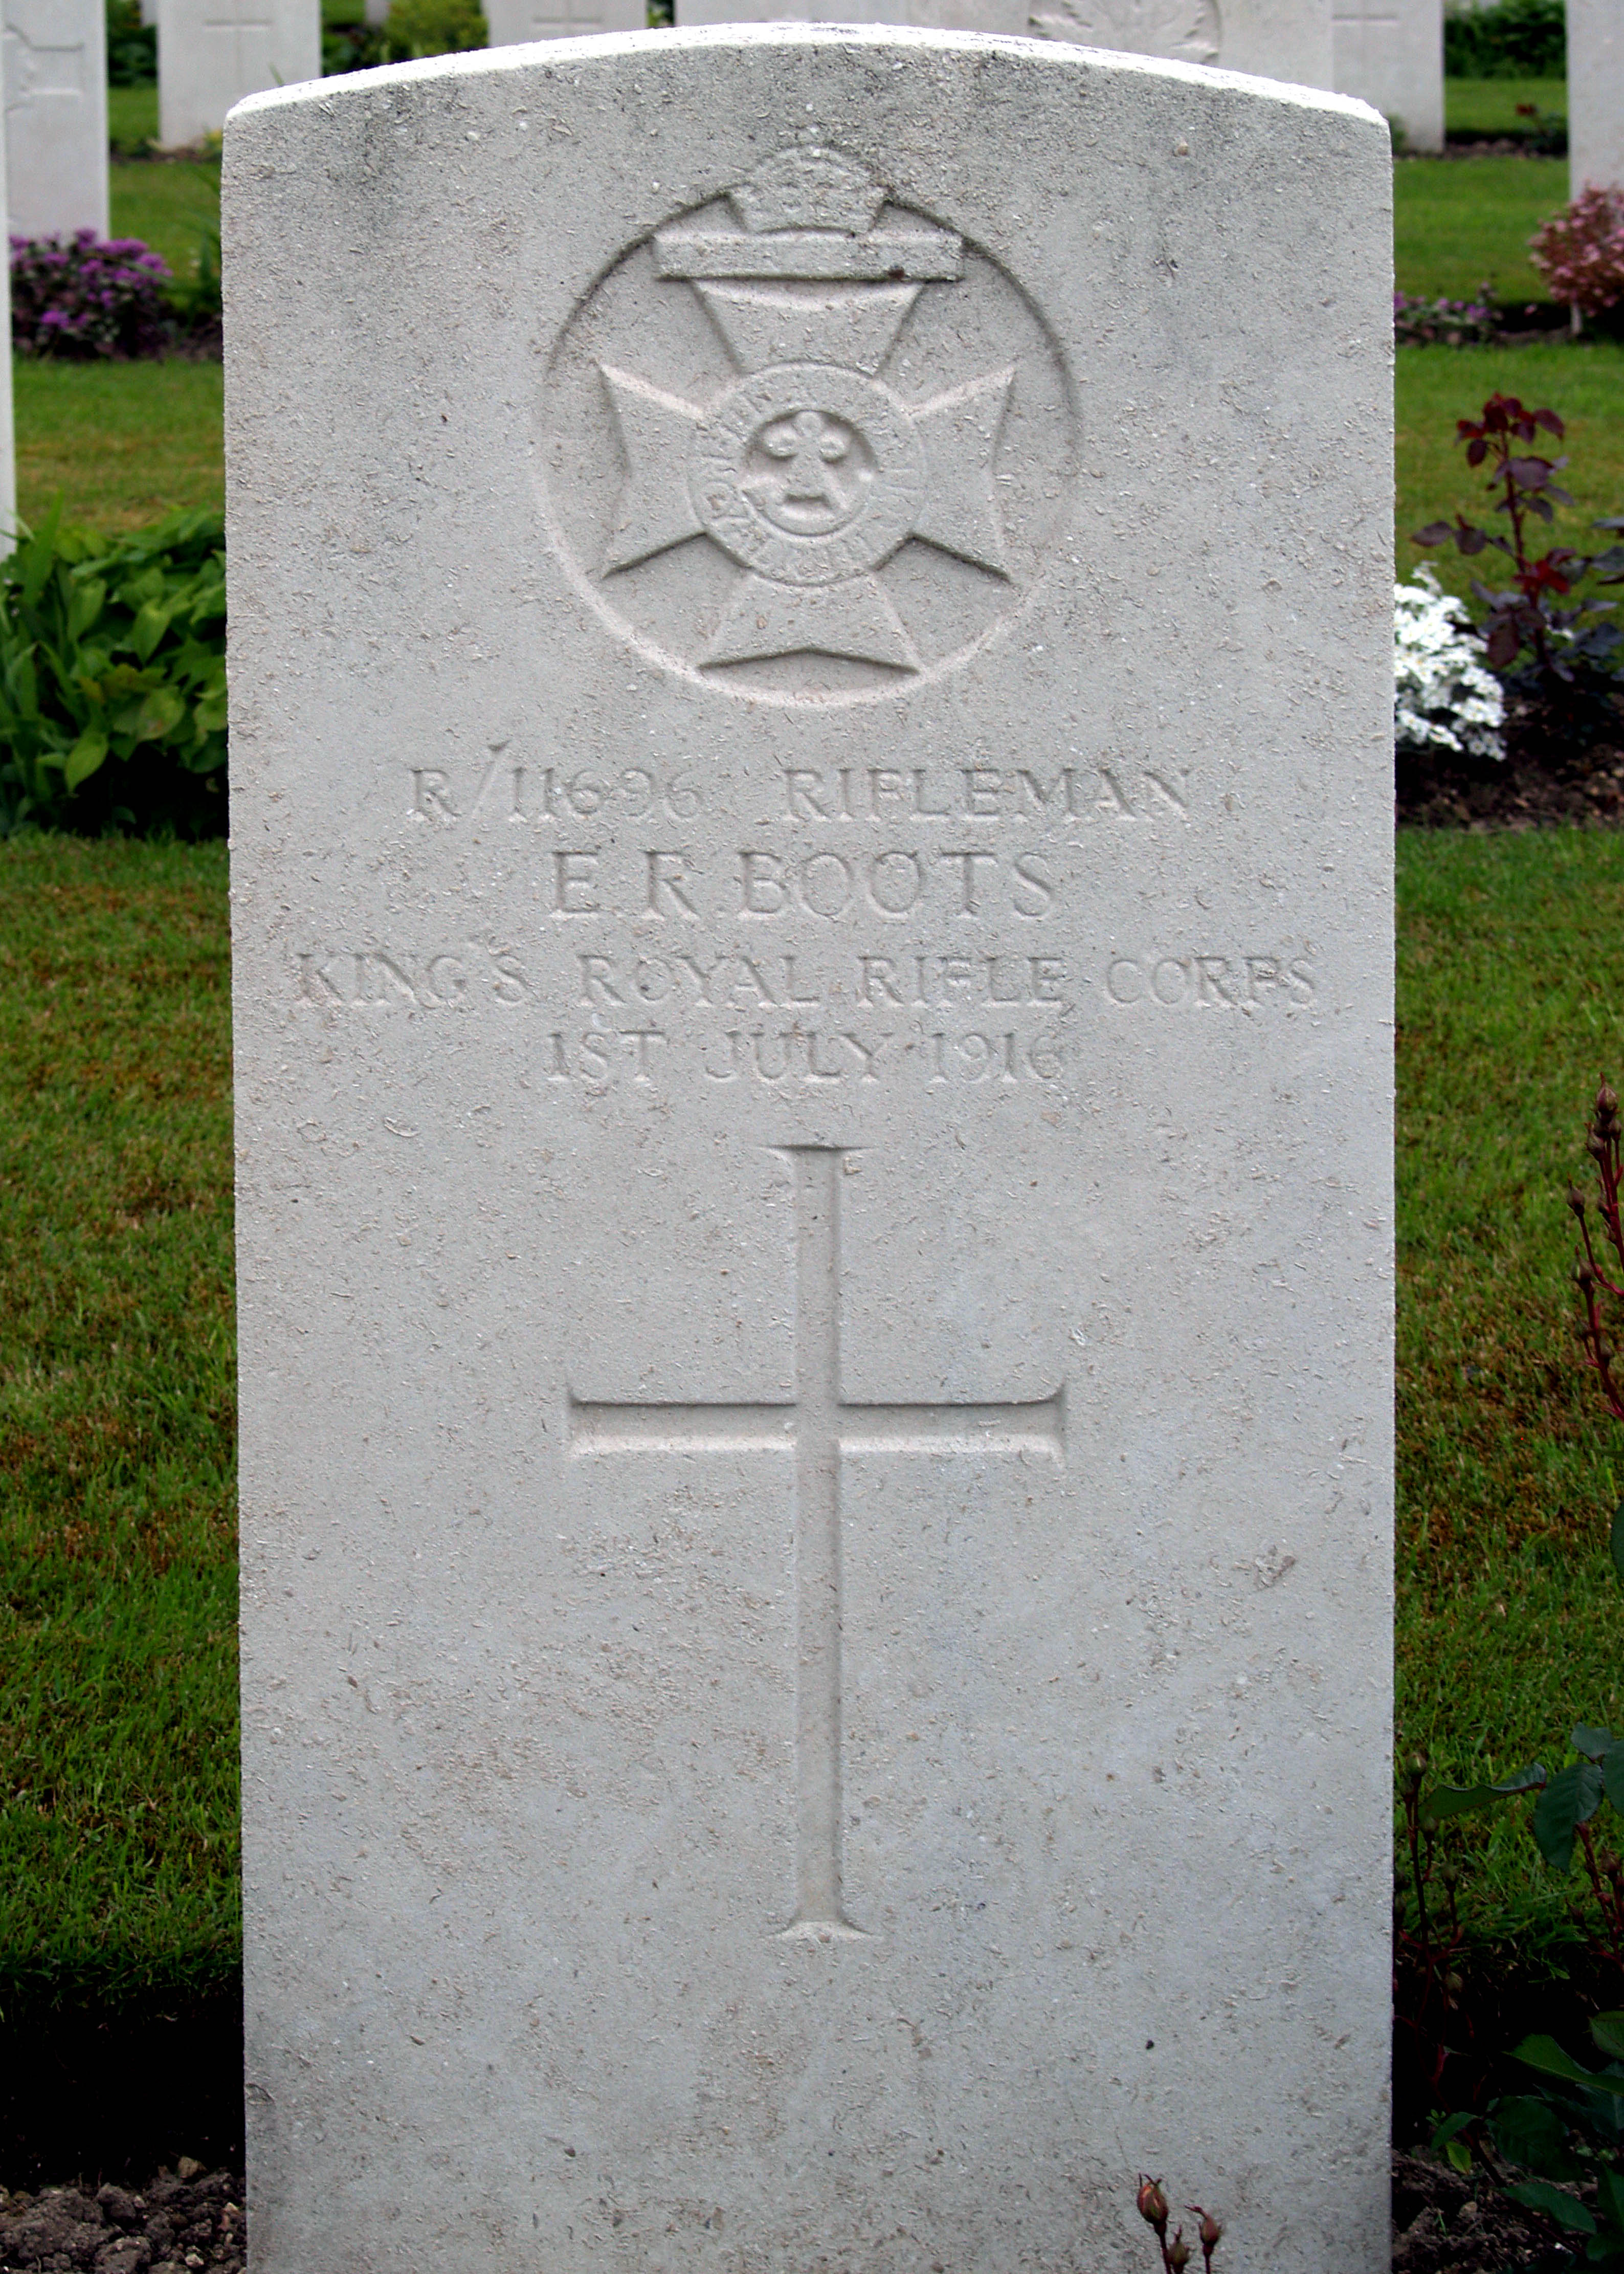 Private Ernest Boot's grave at Maroc Cemetery France.